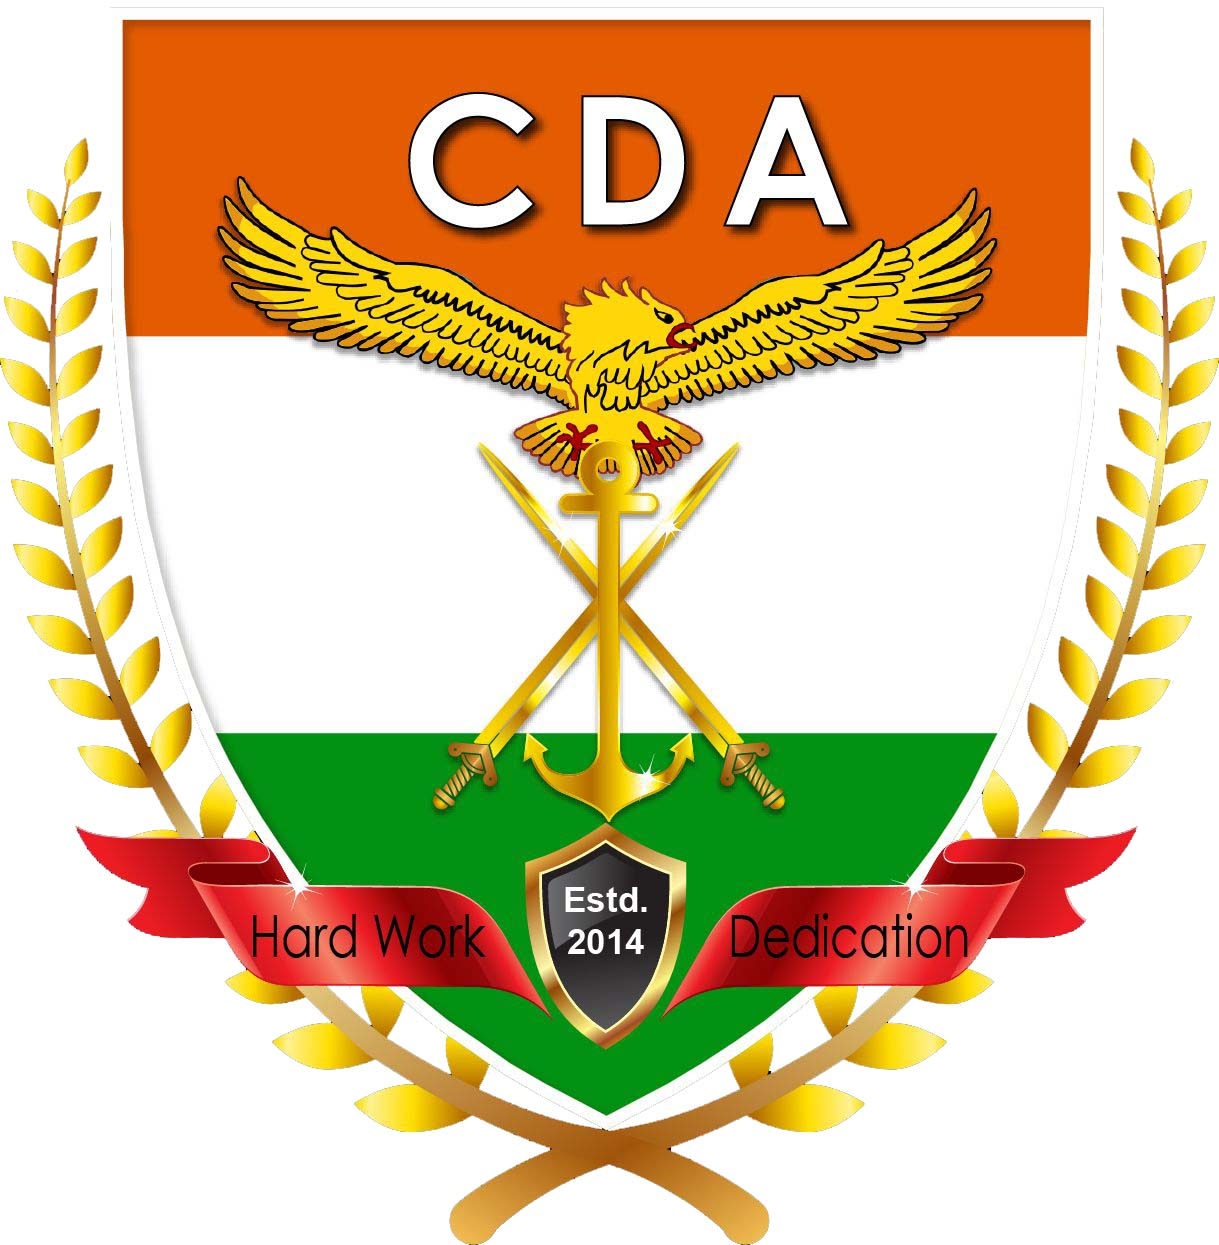 Colonel Defence Academy - Kuchaman City & Sikar